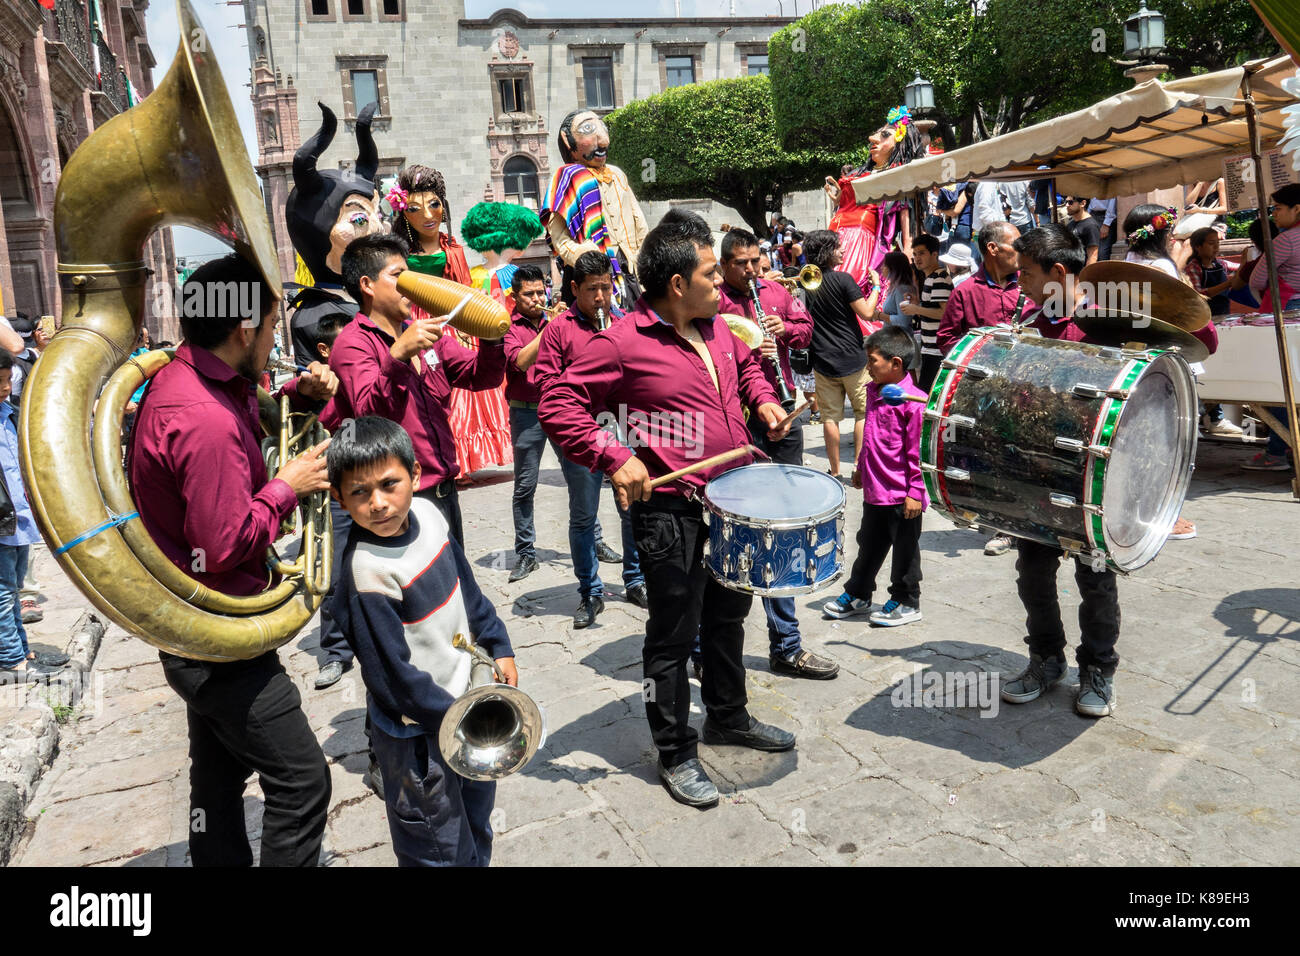 A brass band leads a procession of giant papier mache puppets called mojigangas during a children's parade celebrating - Stock Image